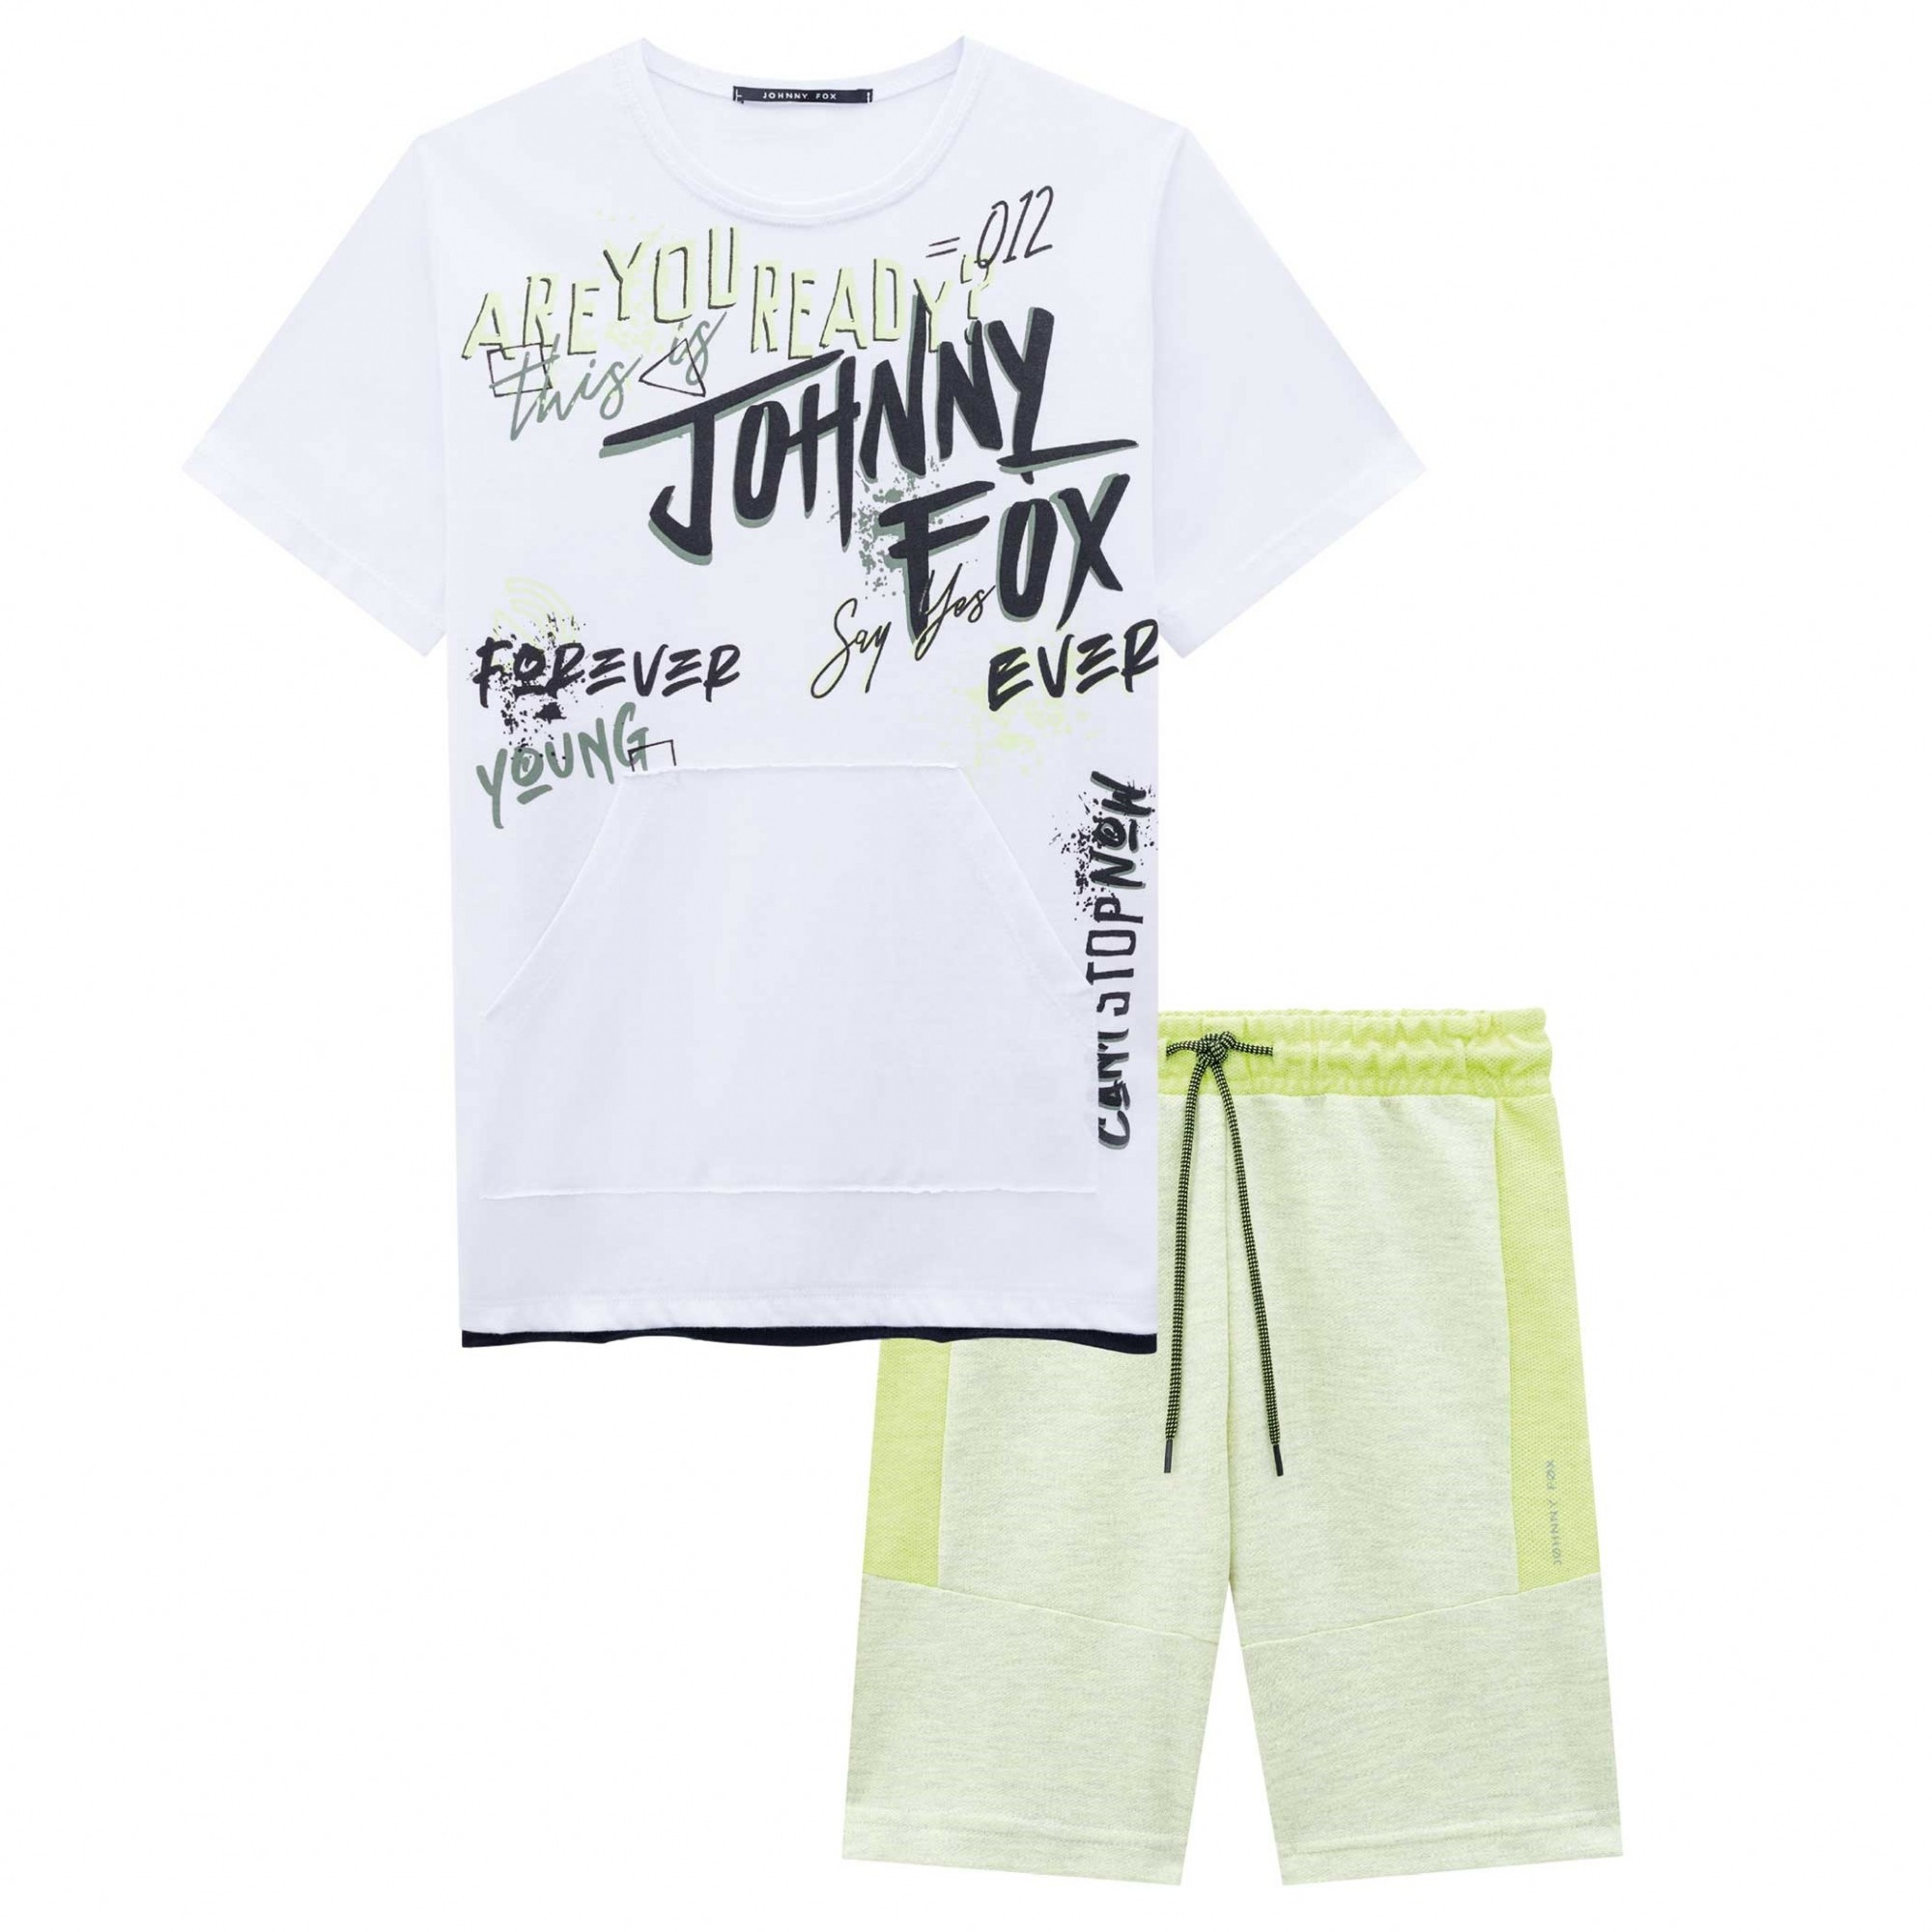 CONJUNTO MASCULINO MALHA CAMISETA BRANCA 'ARE YOU READY?' + BERMUDA AMARELA MESCLA - JOHNNY FOX